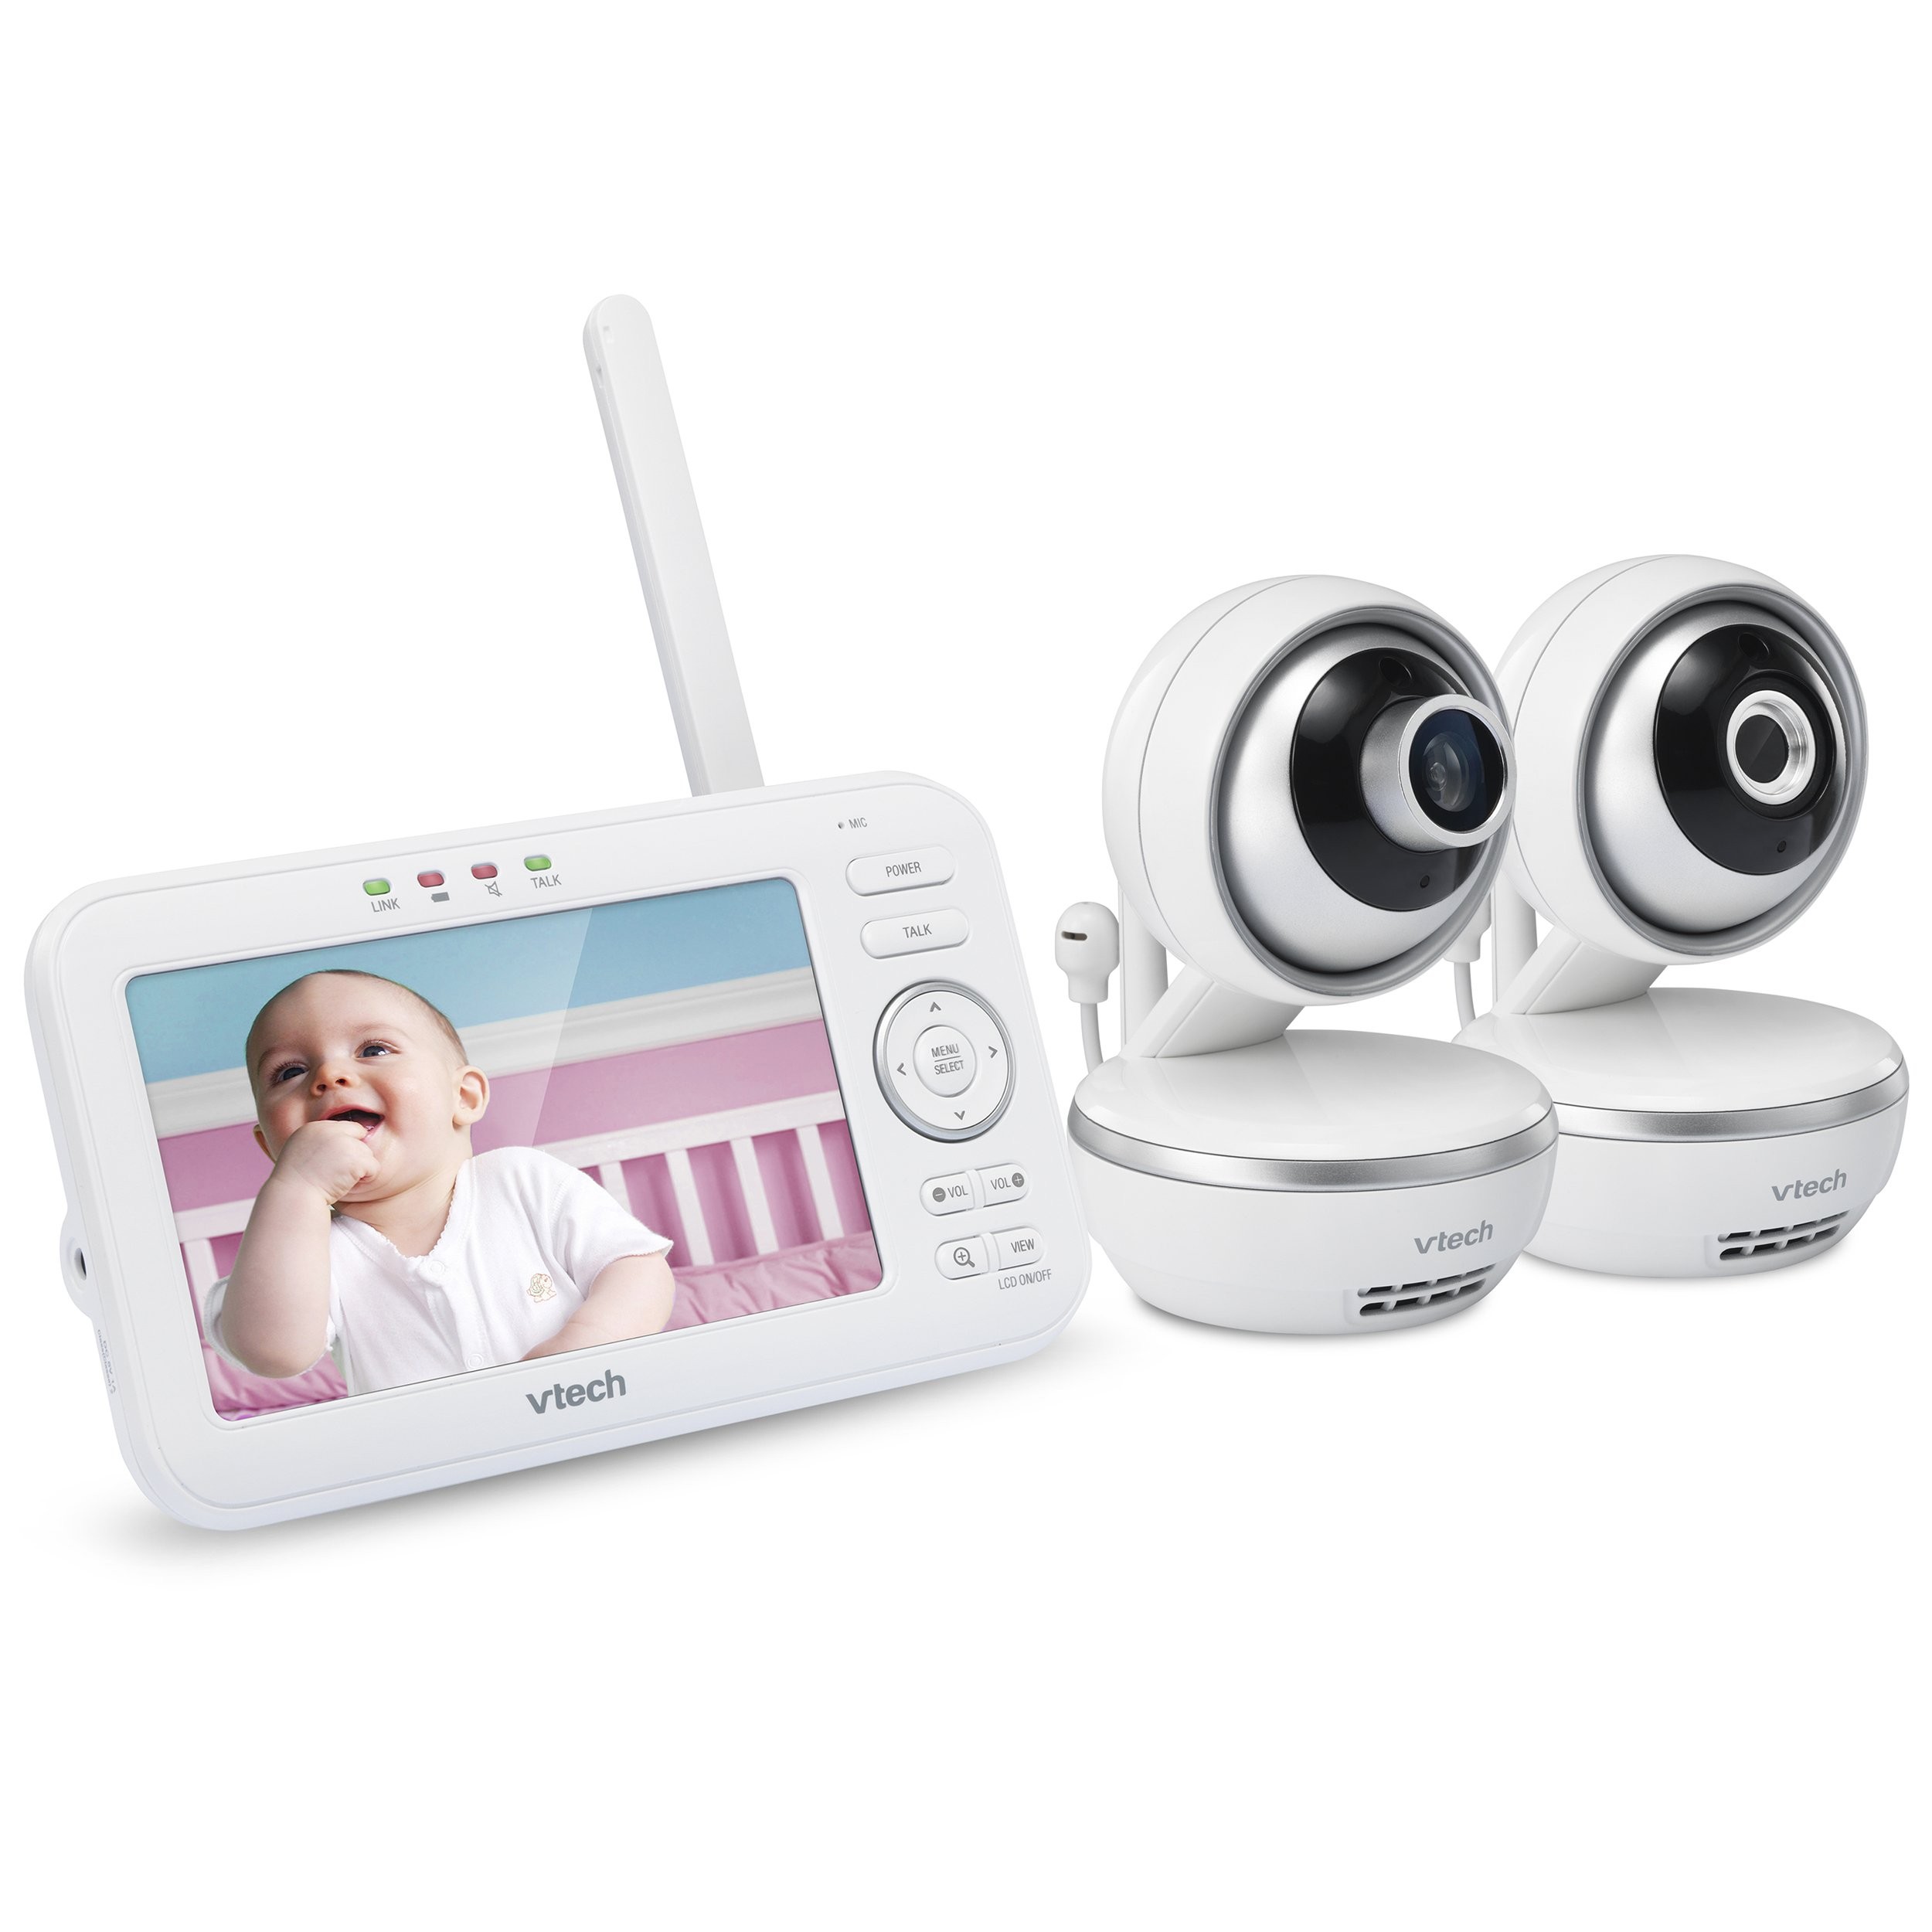 "VTech VM5261-2 5"" Digital Video Baby Monitor with 2 Pan & Tilt Cameras, Wide-Angle Lens and Standard Lens, White"